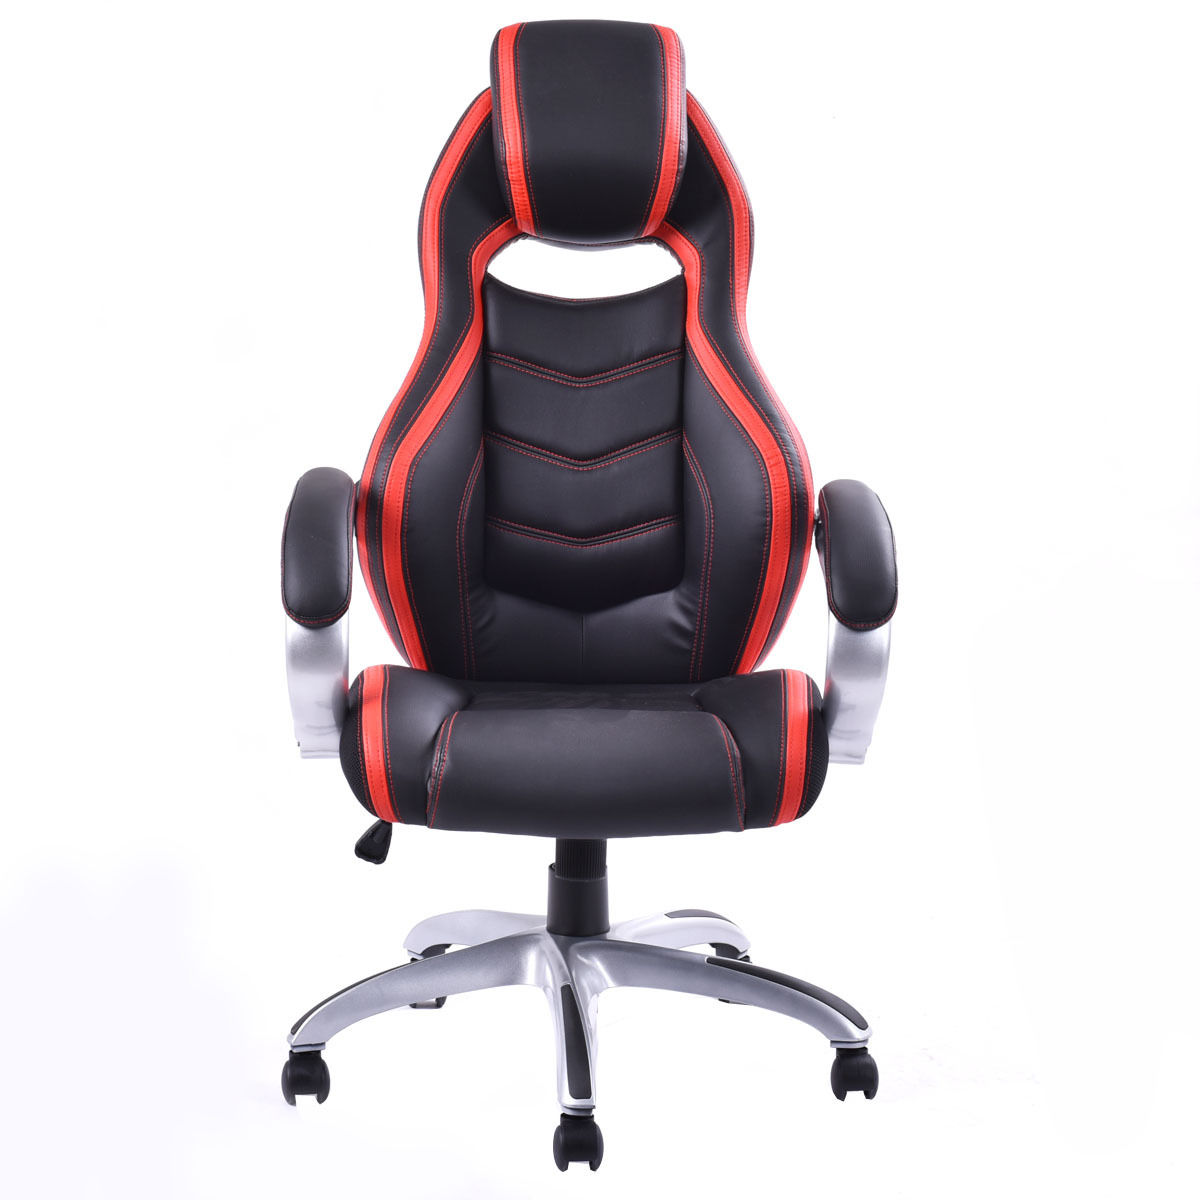 Giantex PU Leather High Back Racing Style Bucket Seat Gaming Chair With Head Pillow Modern Office Desk Computer Chairs HW52433 240340 high quality back pillow office chair 3d handrail function computer household ergonomic chair 360 degree rotating seat